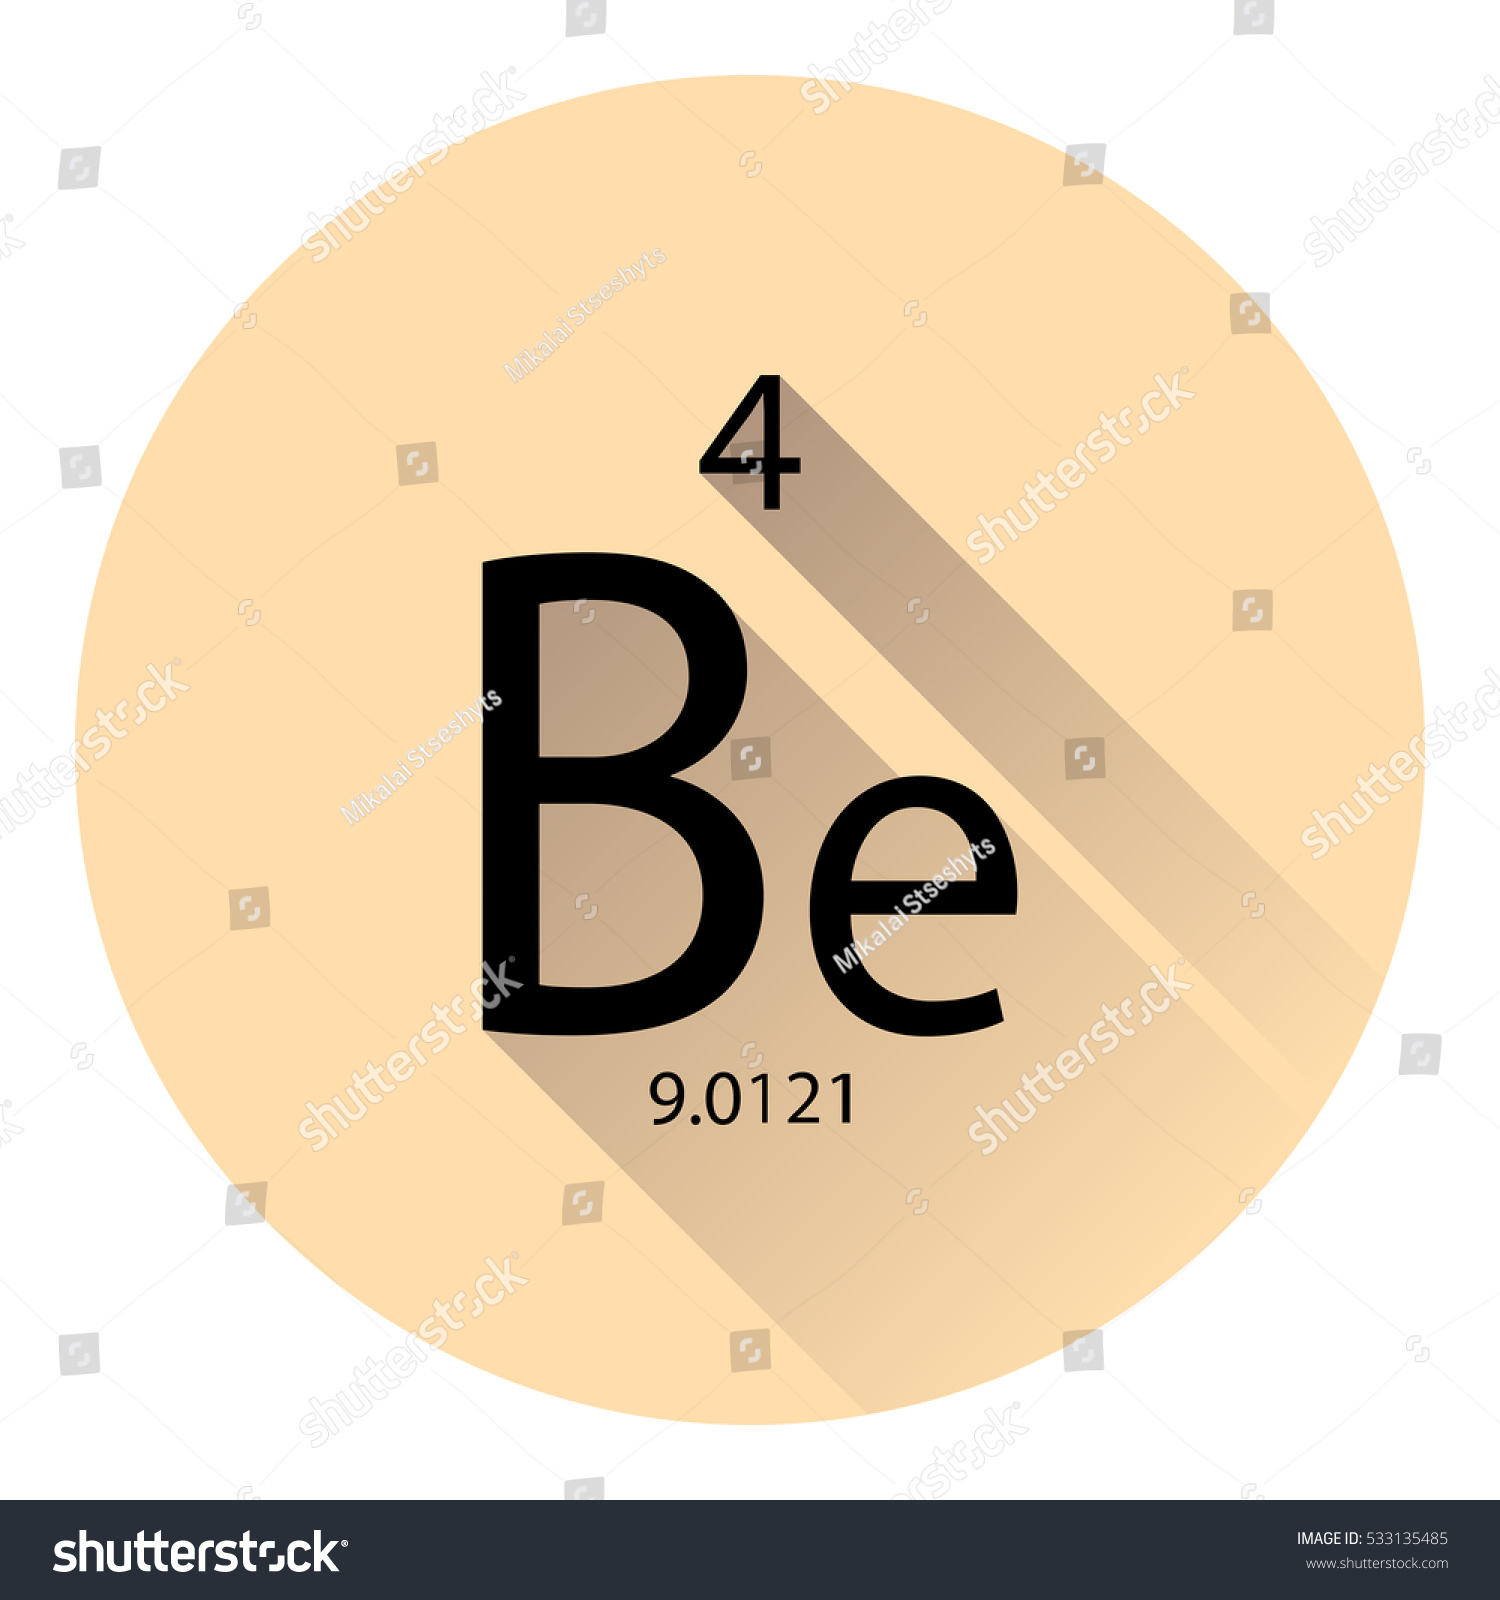 Periodic table element beryllium basic properties stock vector the periodic table element beryllium with the basic properties flat style with long shadow gamestrikefo Image collections